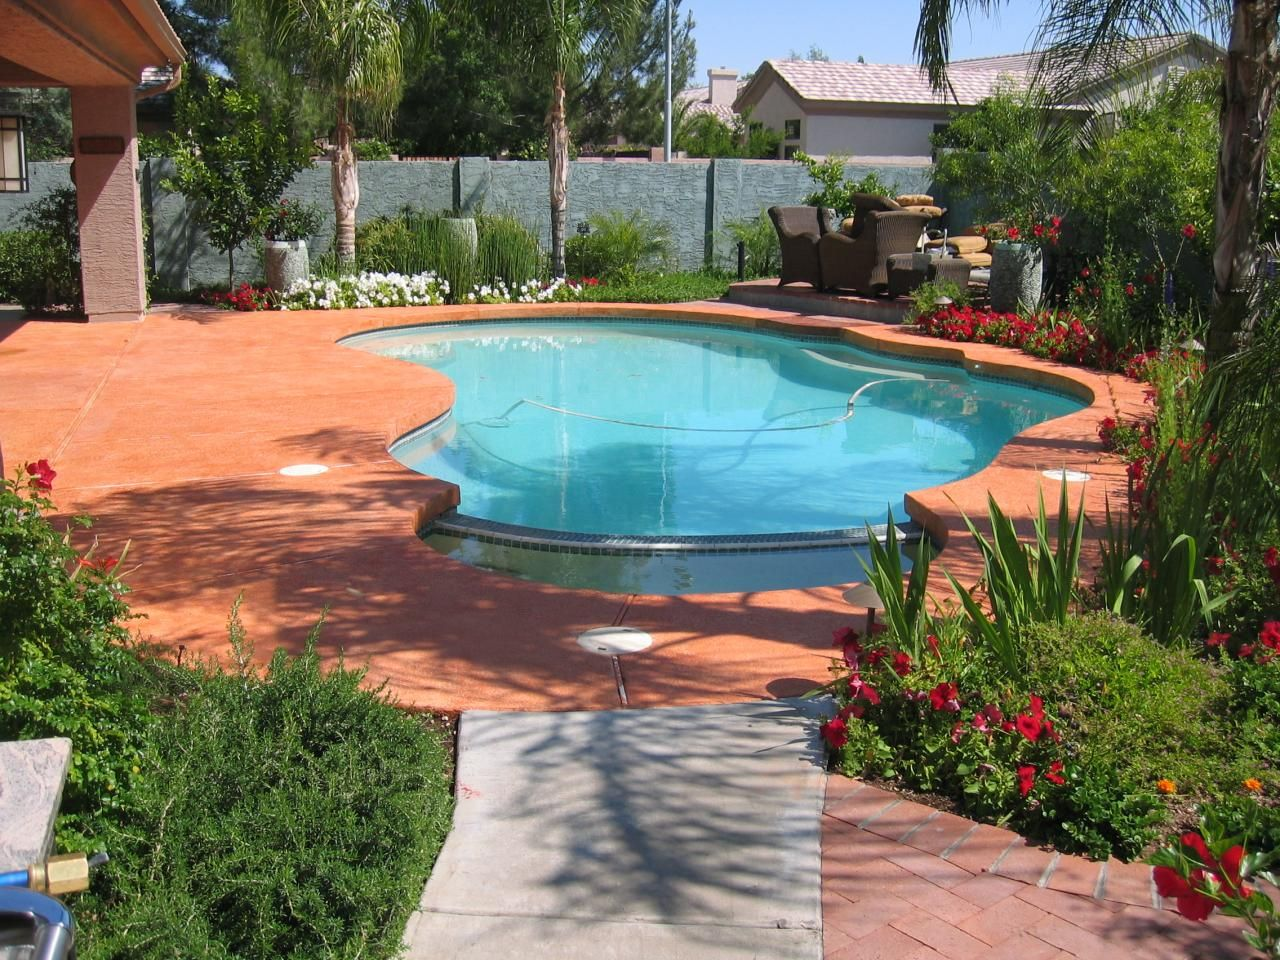 27 best patio color ideas to enhance home value | pool club